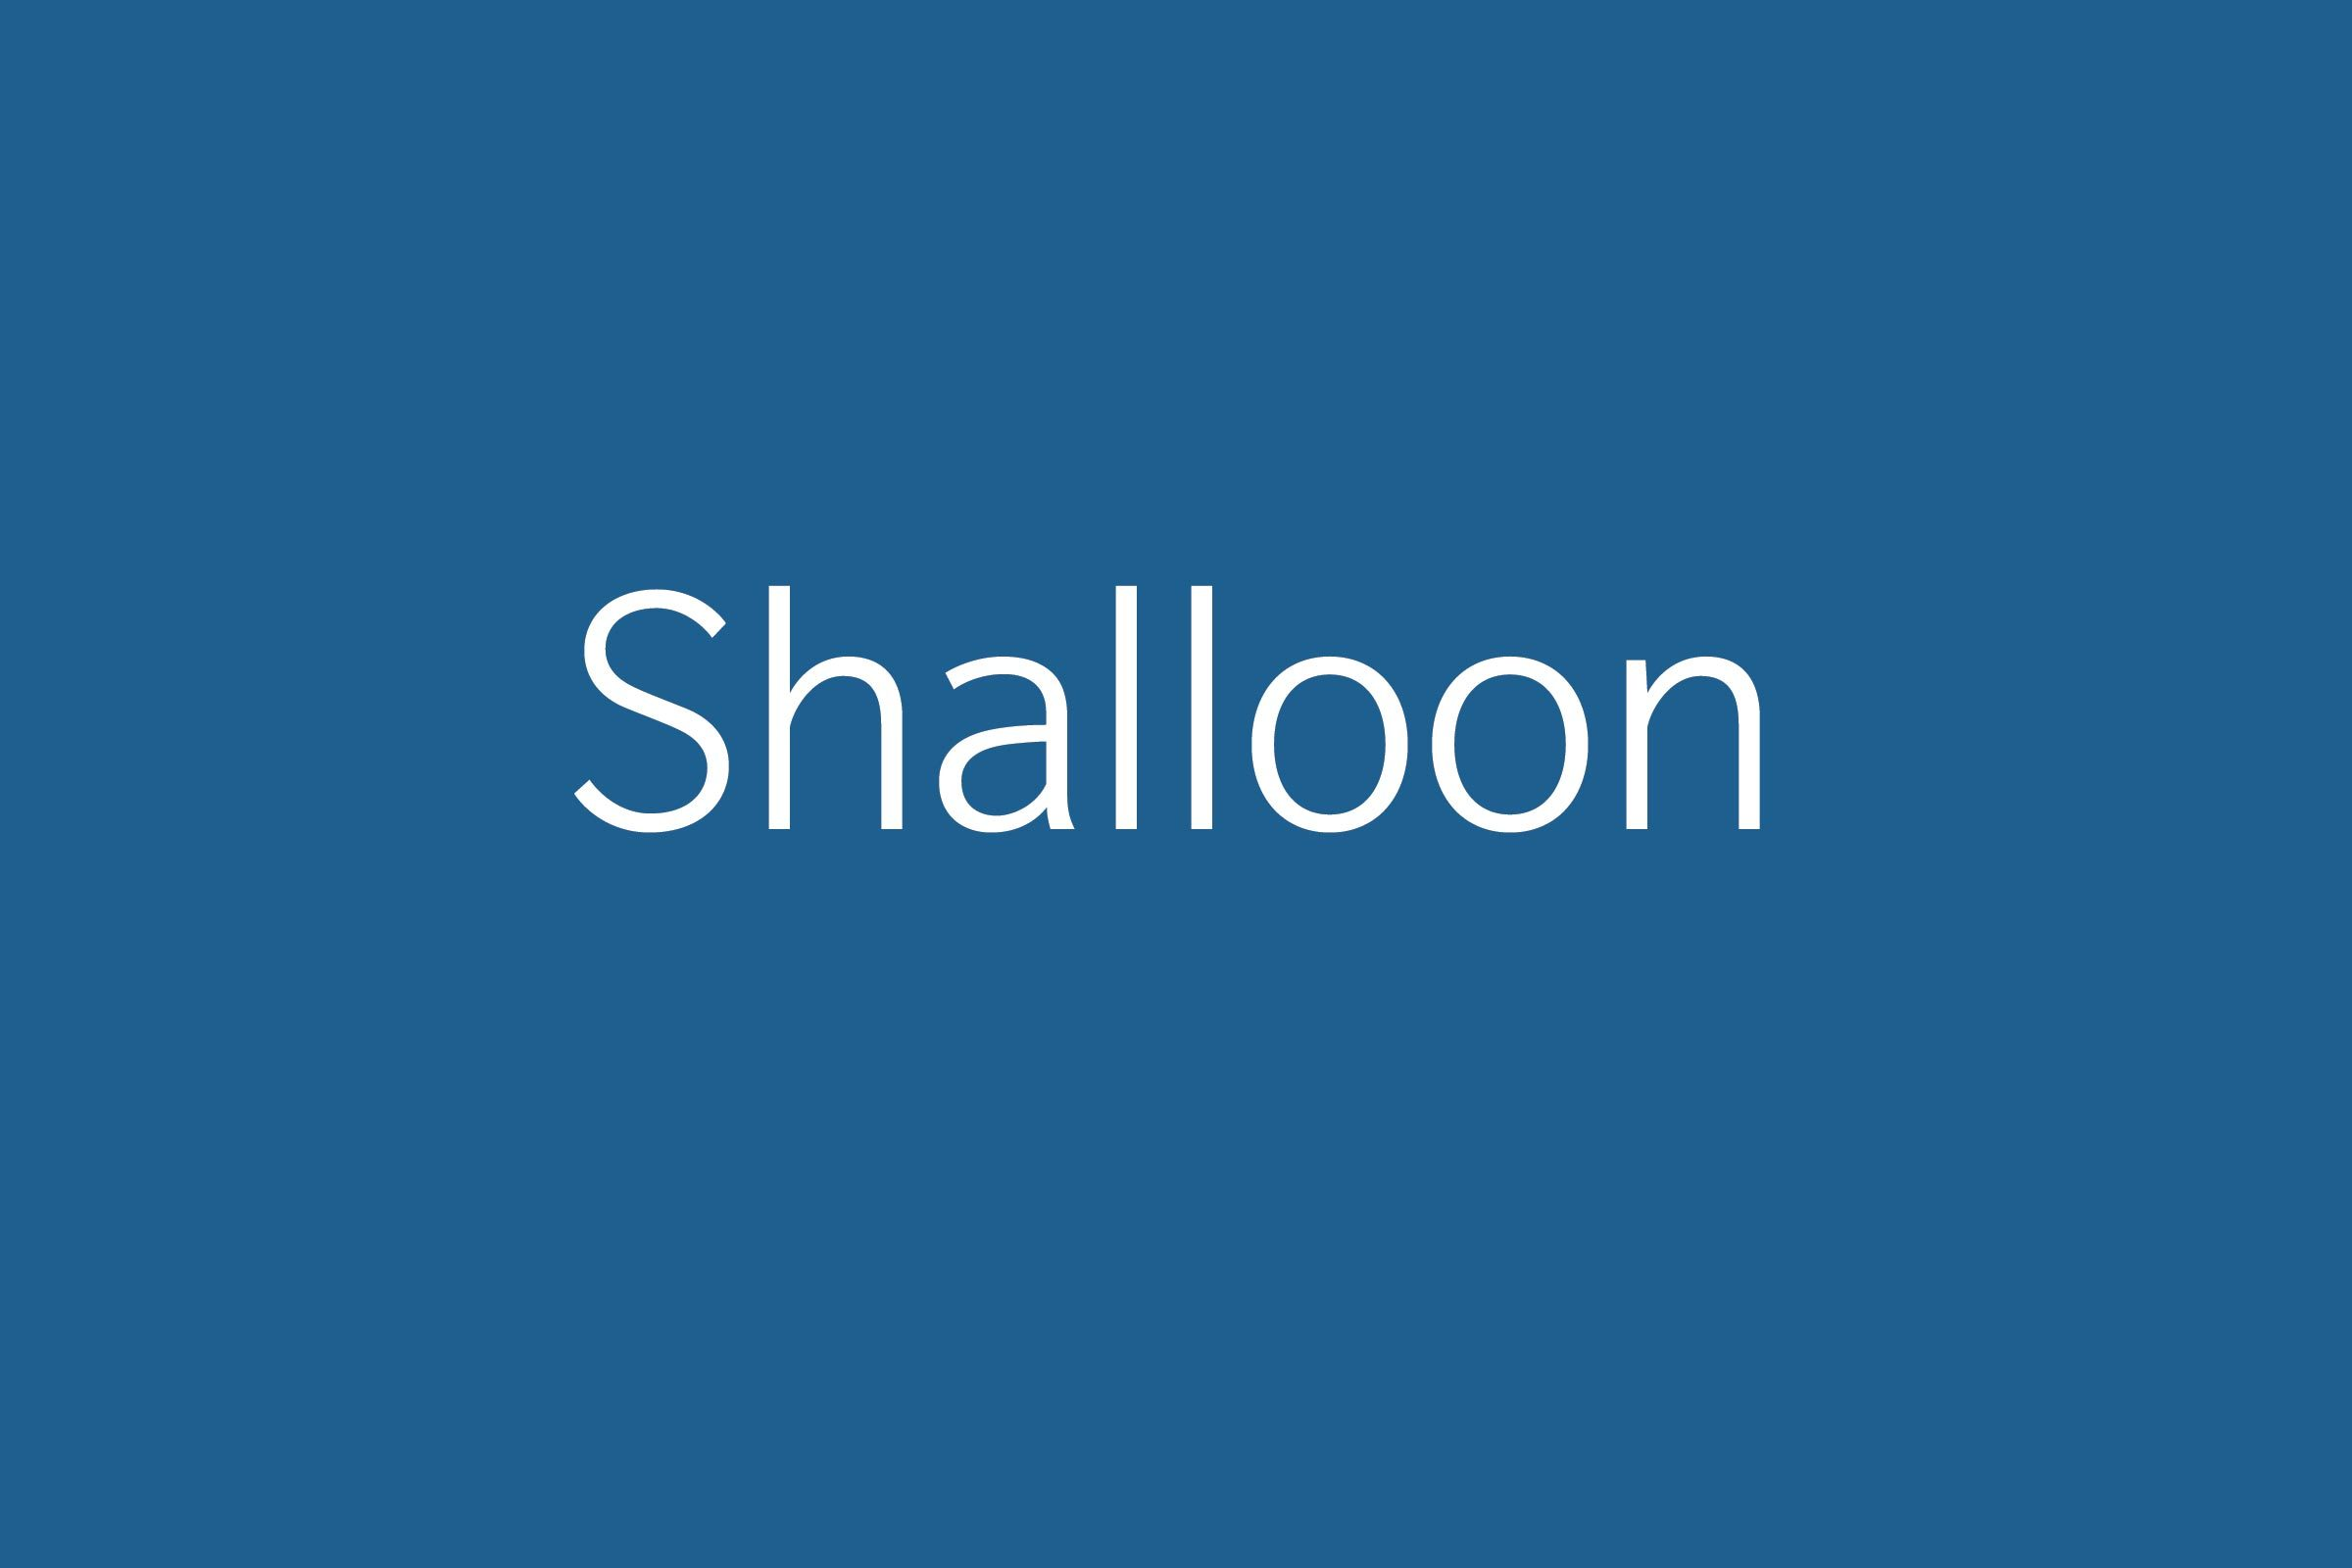 shalloon funny word funny words to say